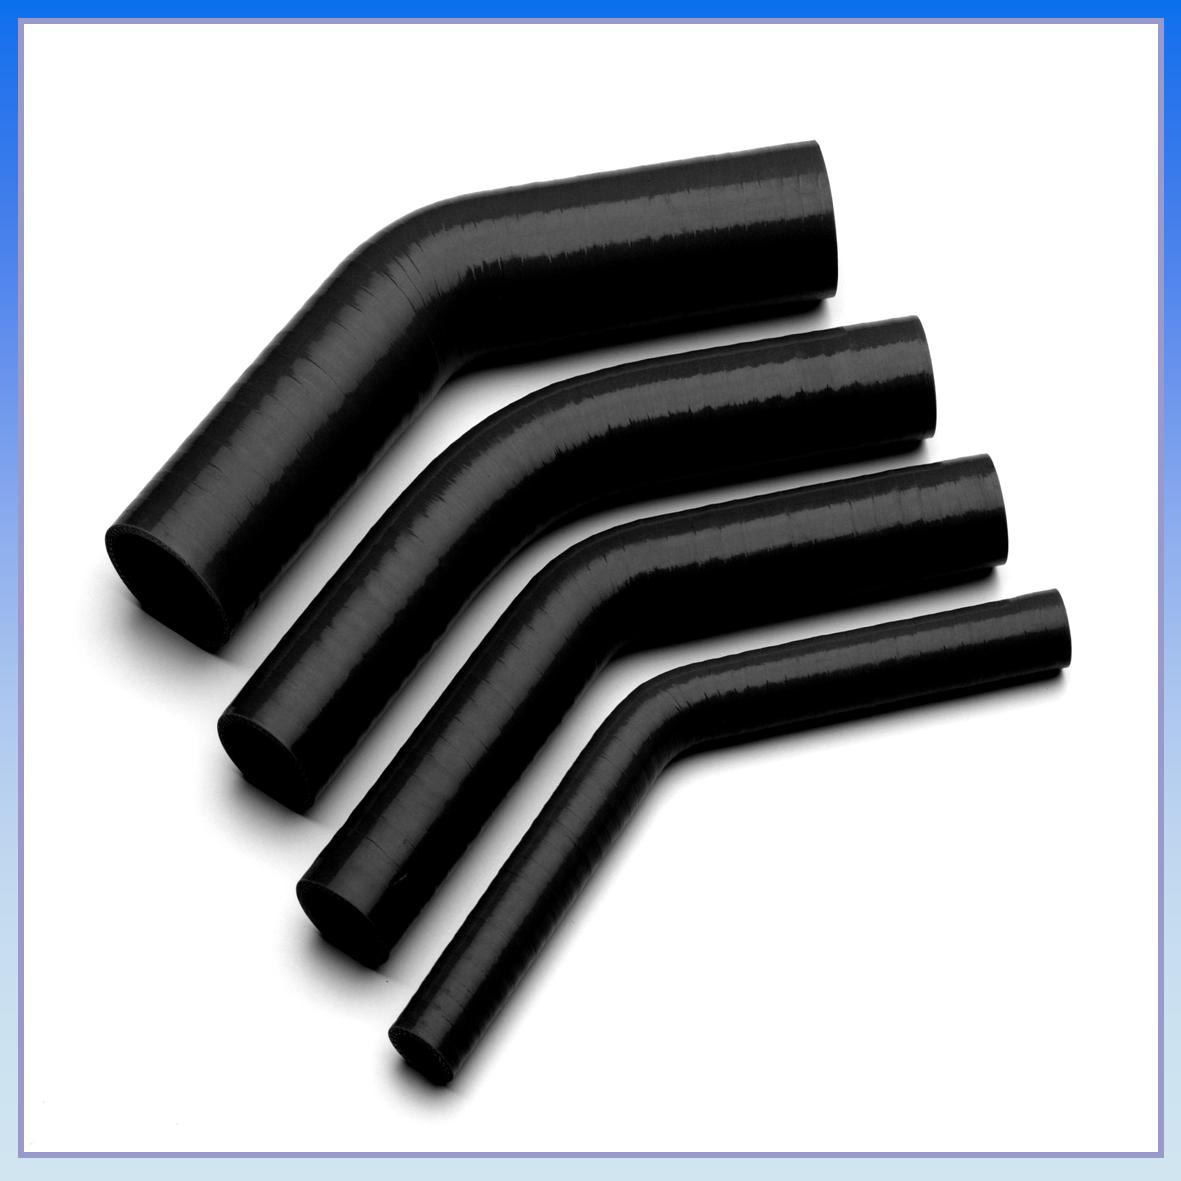 22mm ID Black 3 Metre Length 1 Ply Silicone Radiator Hose AutoSiliconeHoses